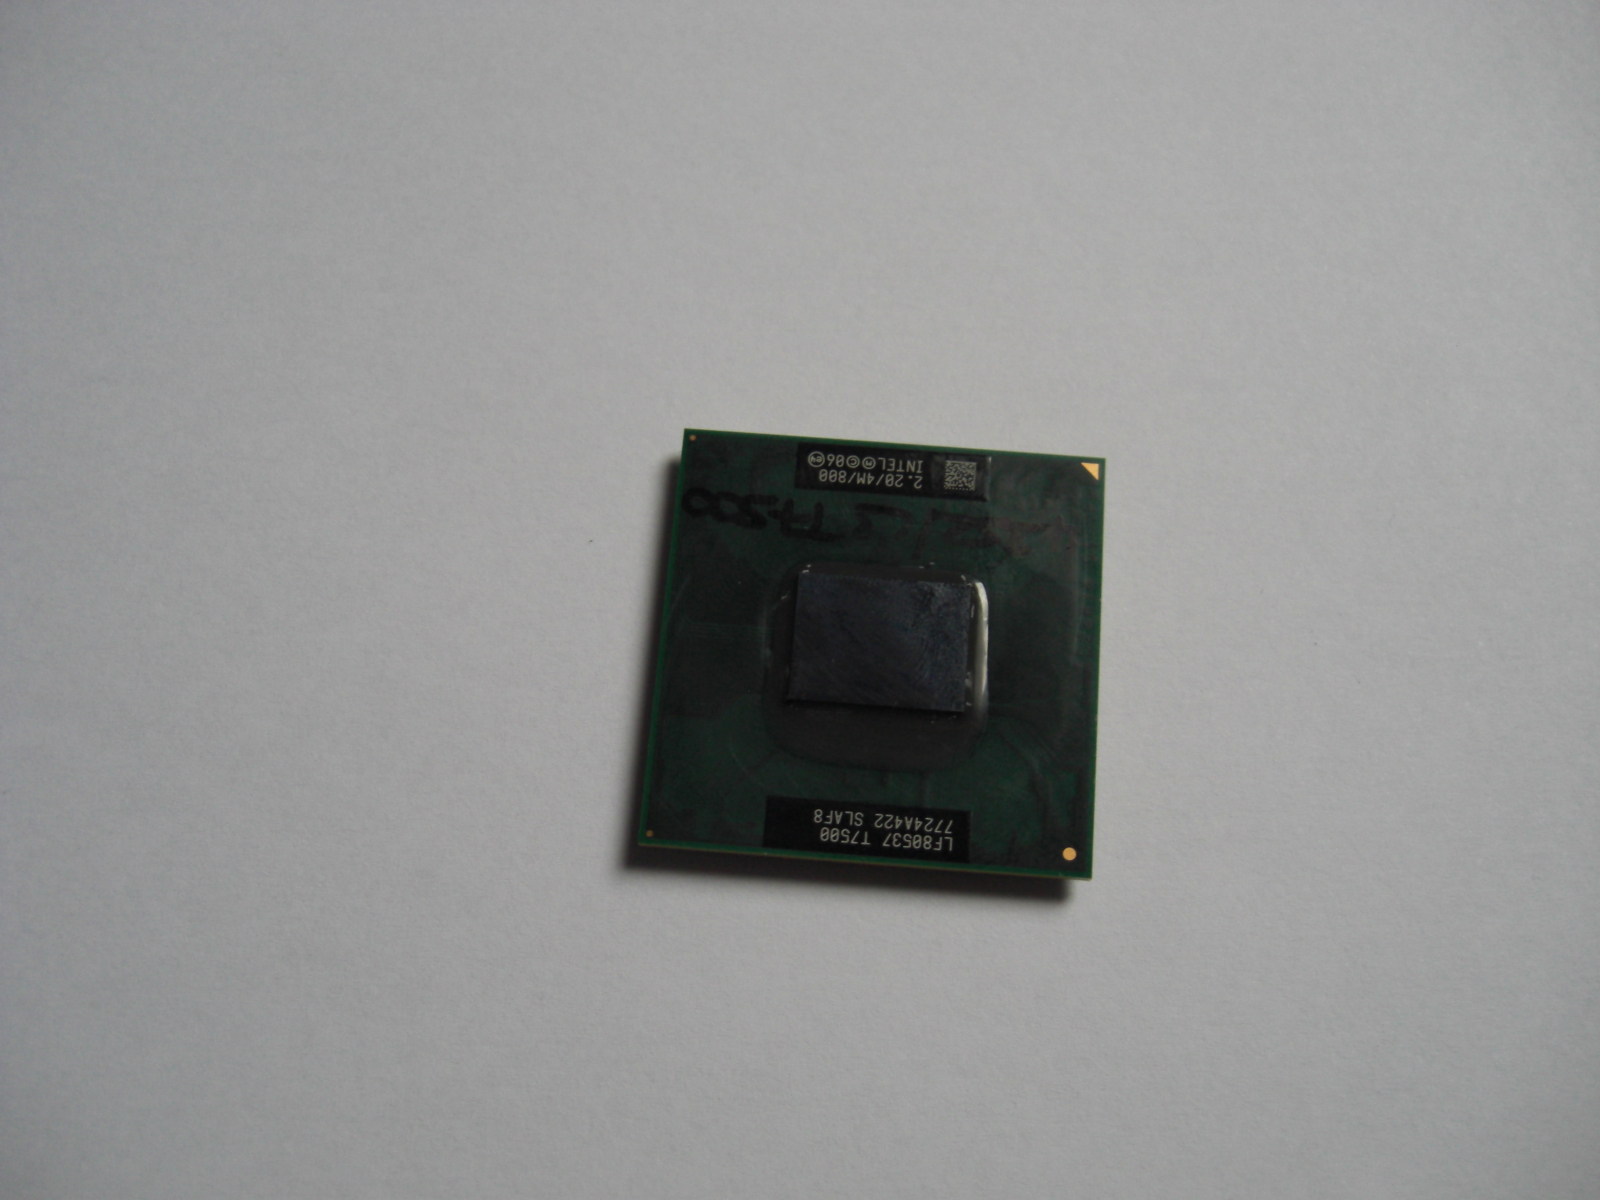 INTEL CORE 2 DUO M 2.0GHZ 800MHZ SLA49